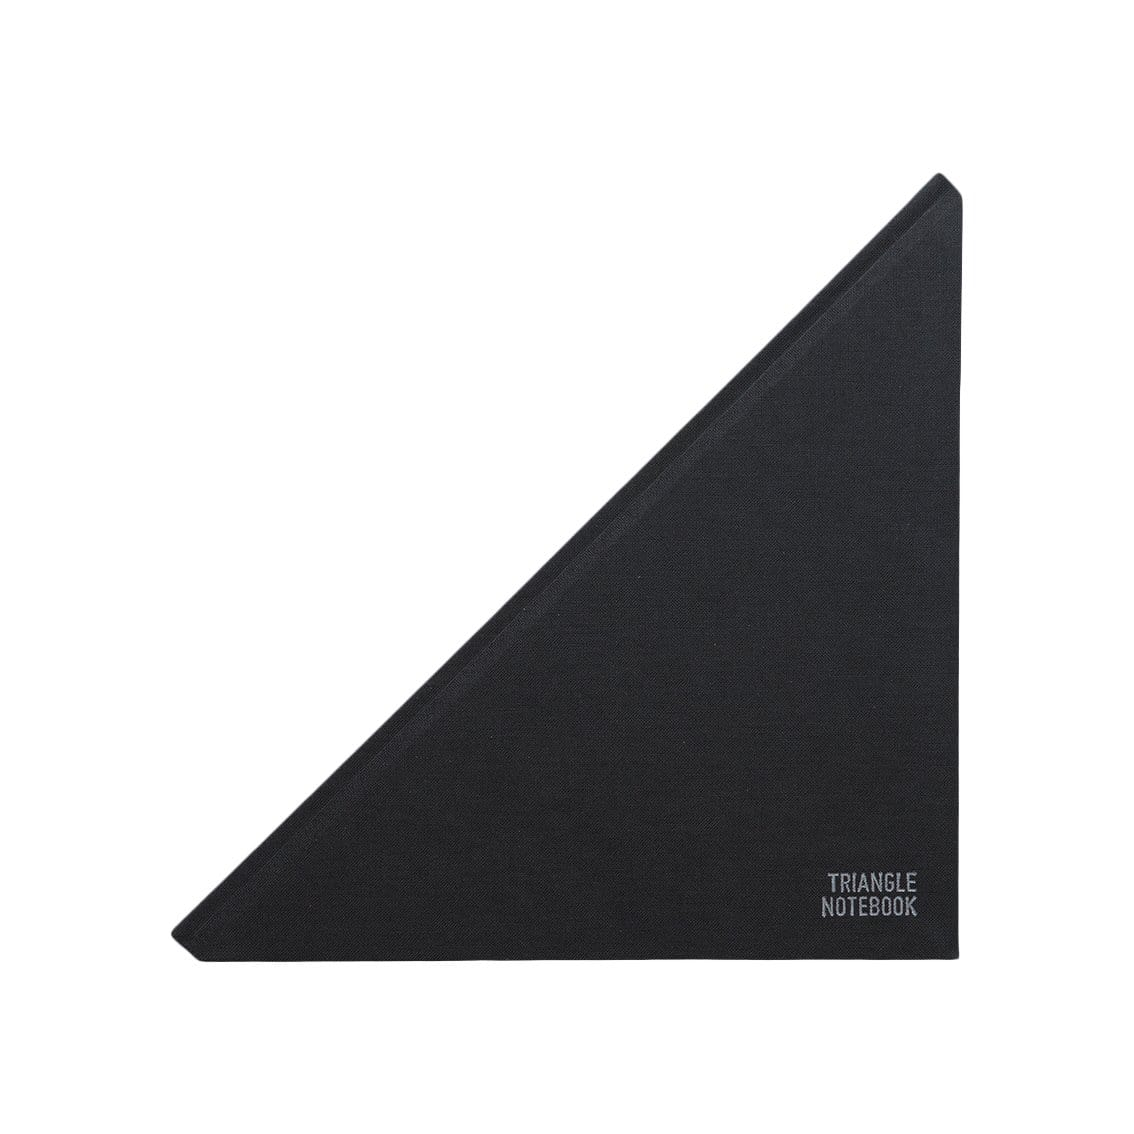 Triangle Notebooks Notebooks + Stationery Triangle Ruled Black Notebook